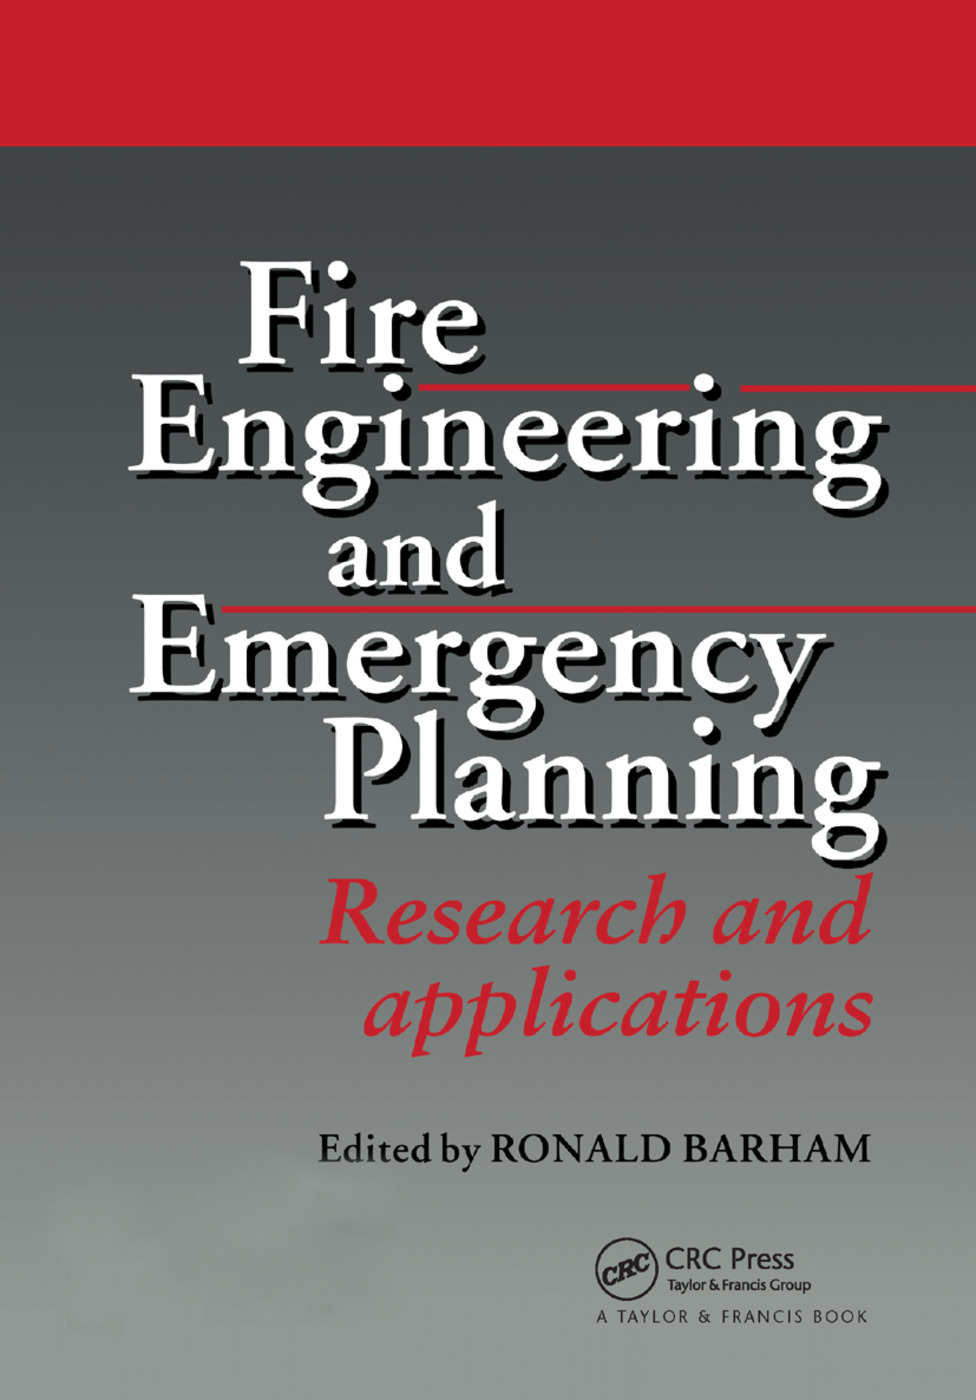 Fire Engineering and Emergency Planning: Research and applications book cover